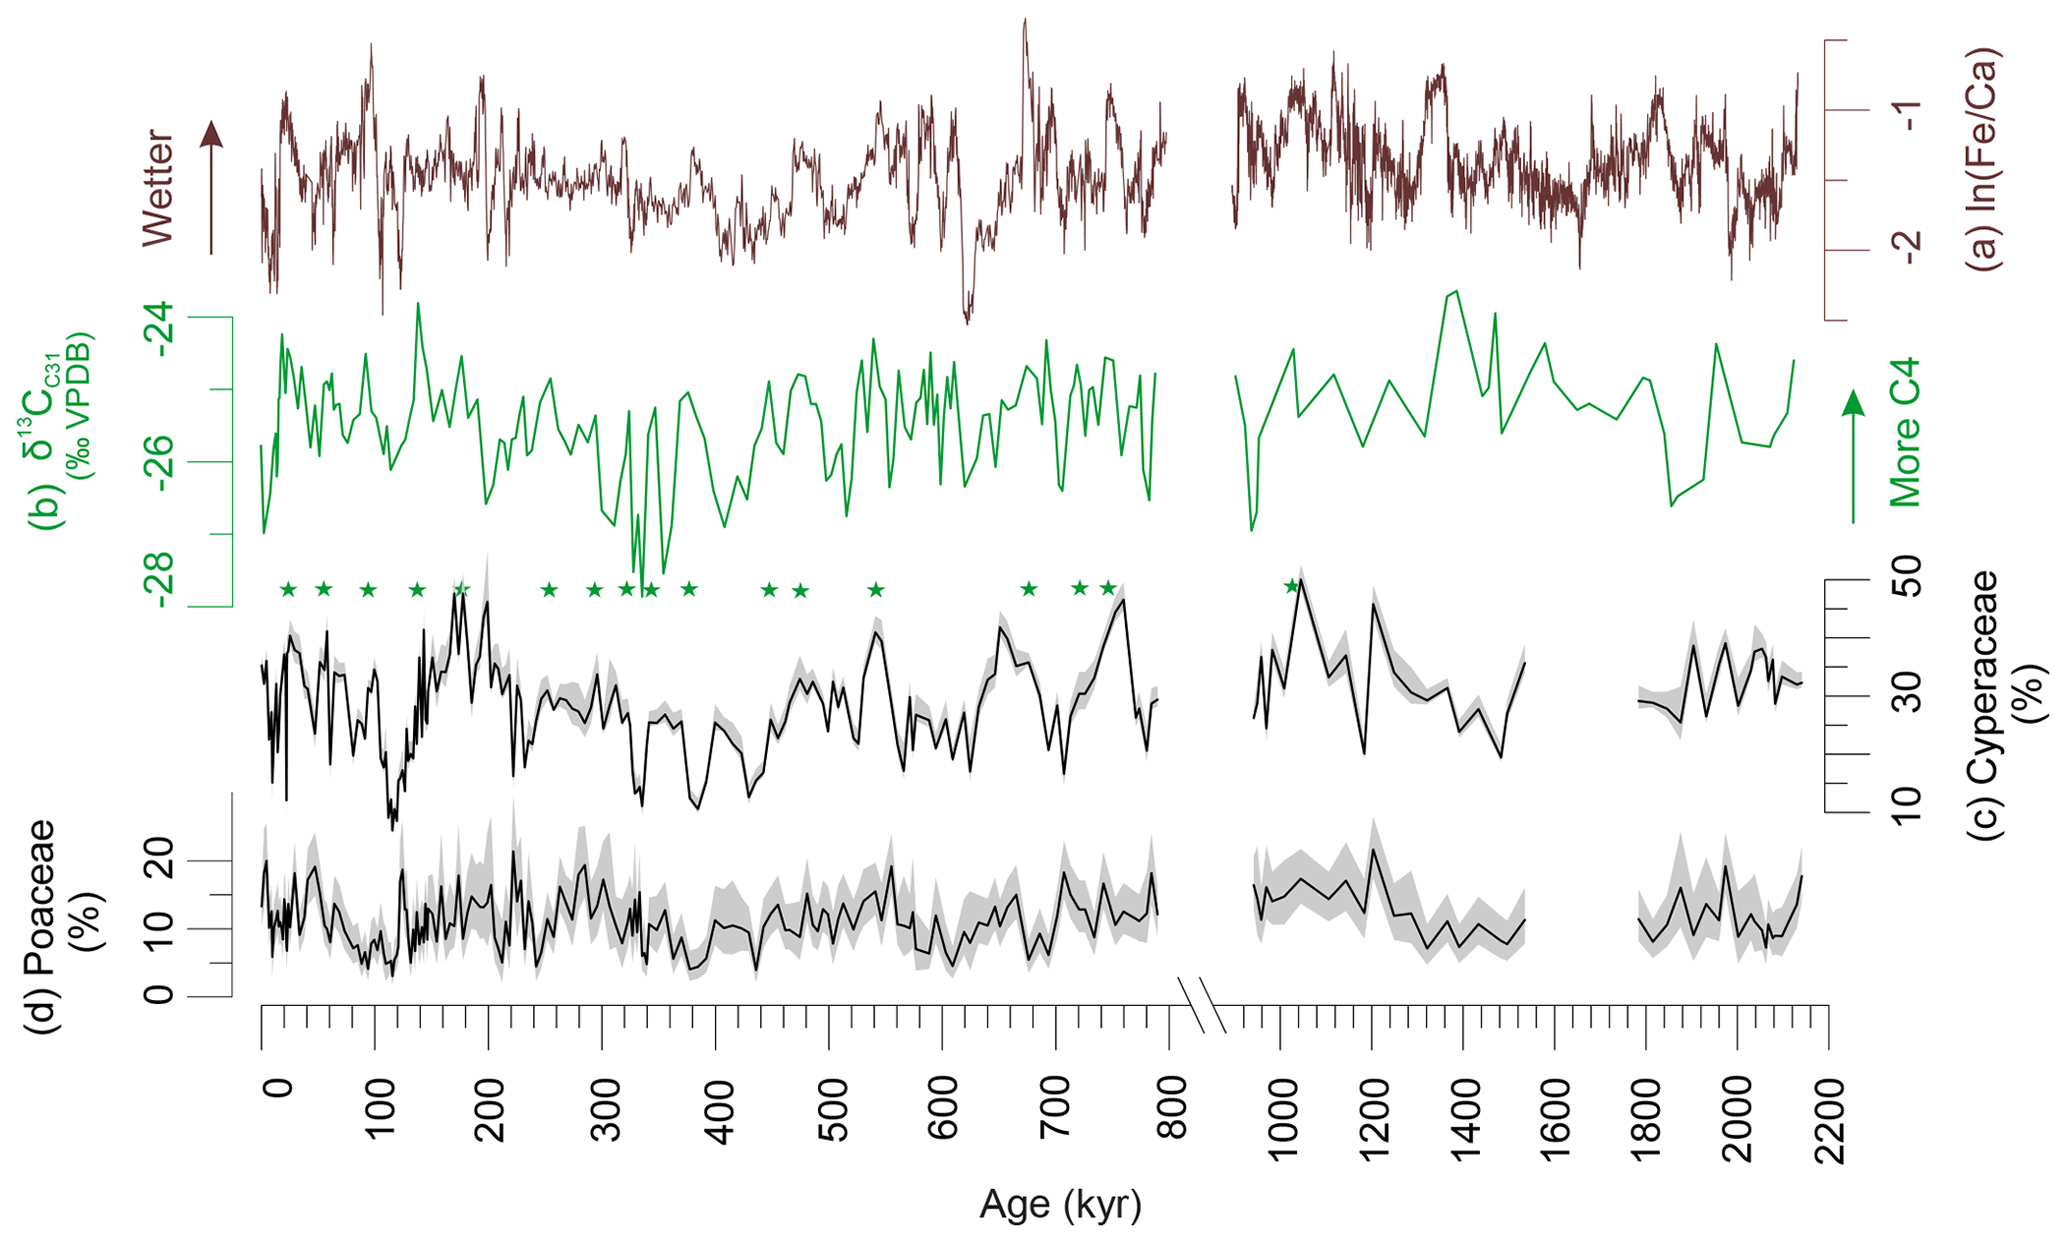 CP - Effects of atmospheric CO2 variability of the past 800